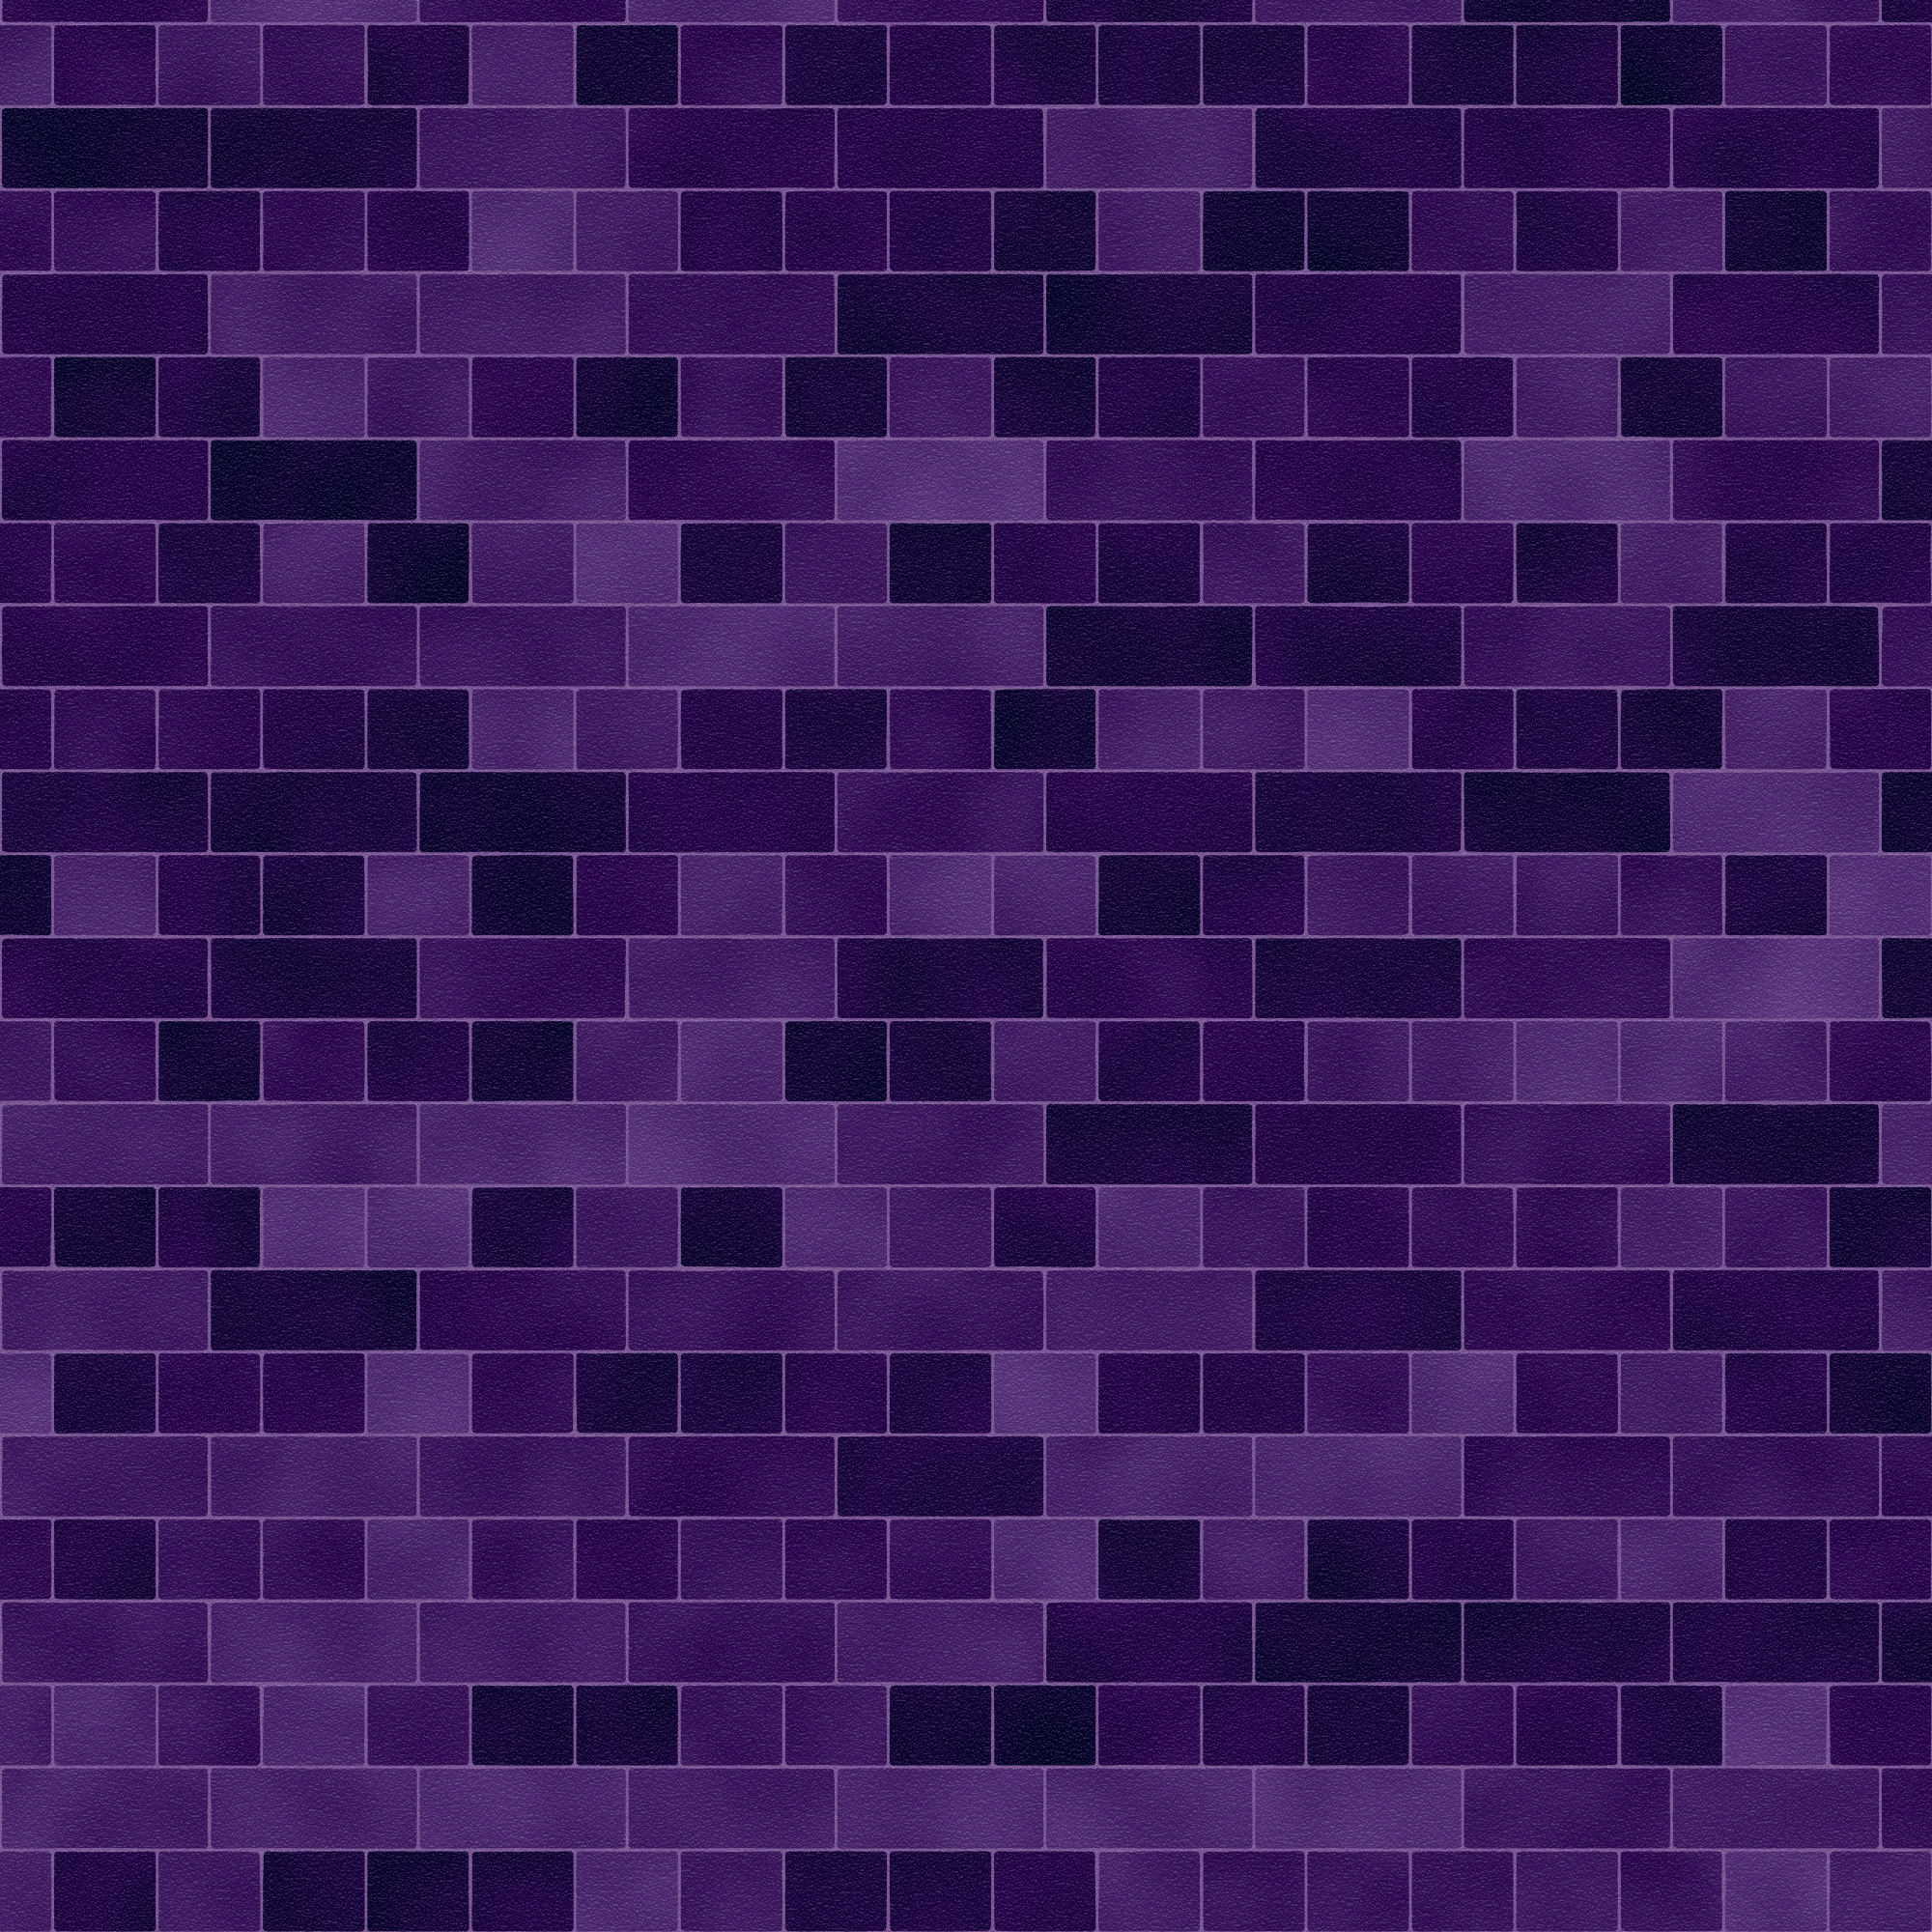 purple brick wall texture, brick wall, download photo, background, texture